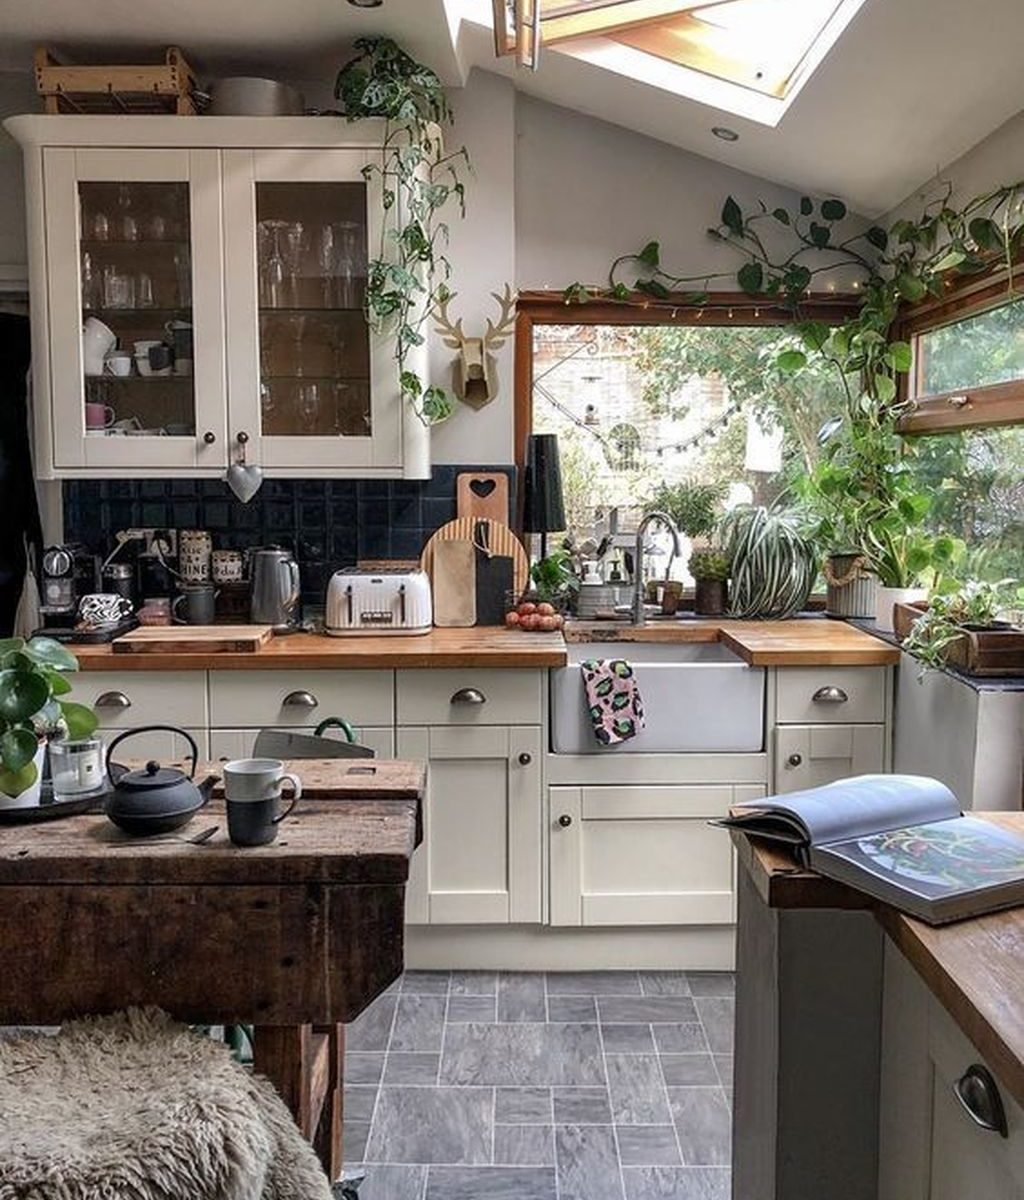 Inspiring Country Kitchen Decor Ideas You Should Copy 28